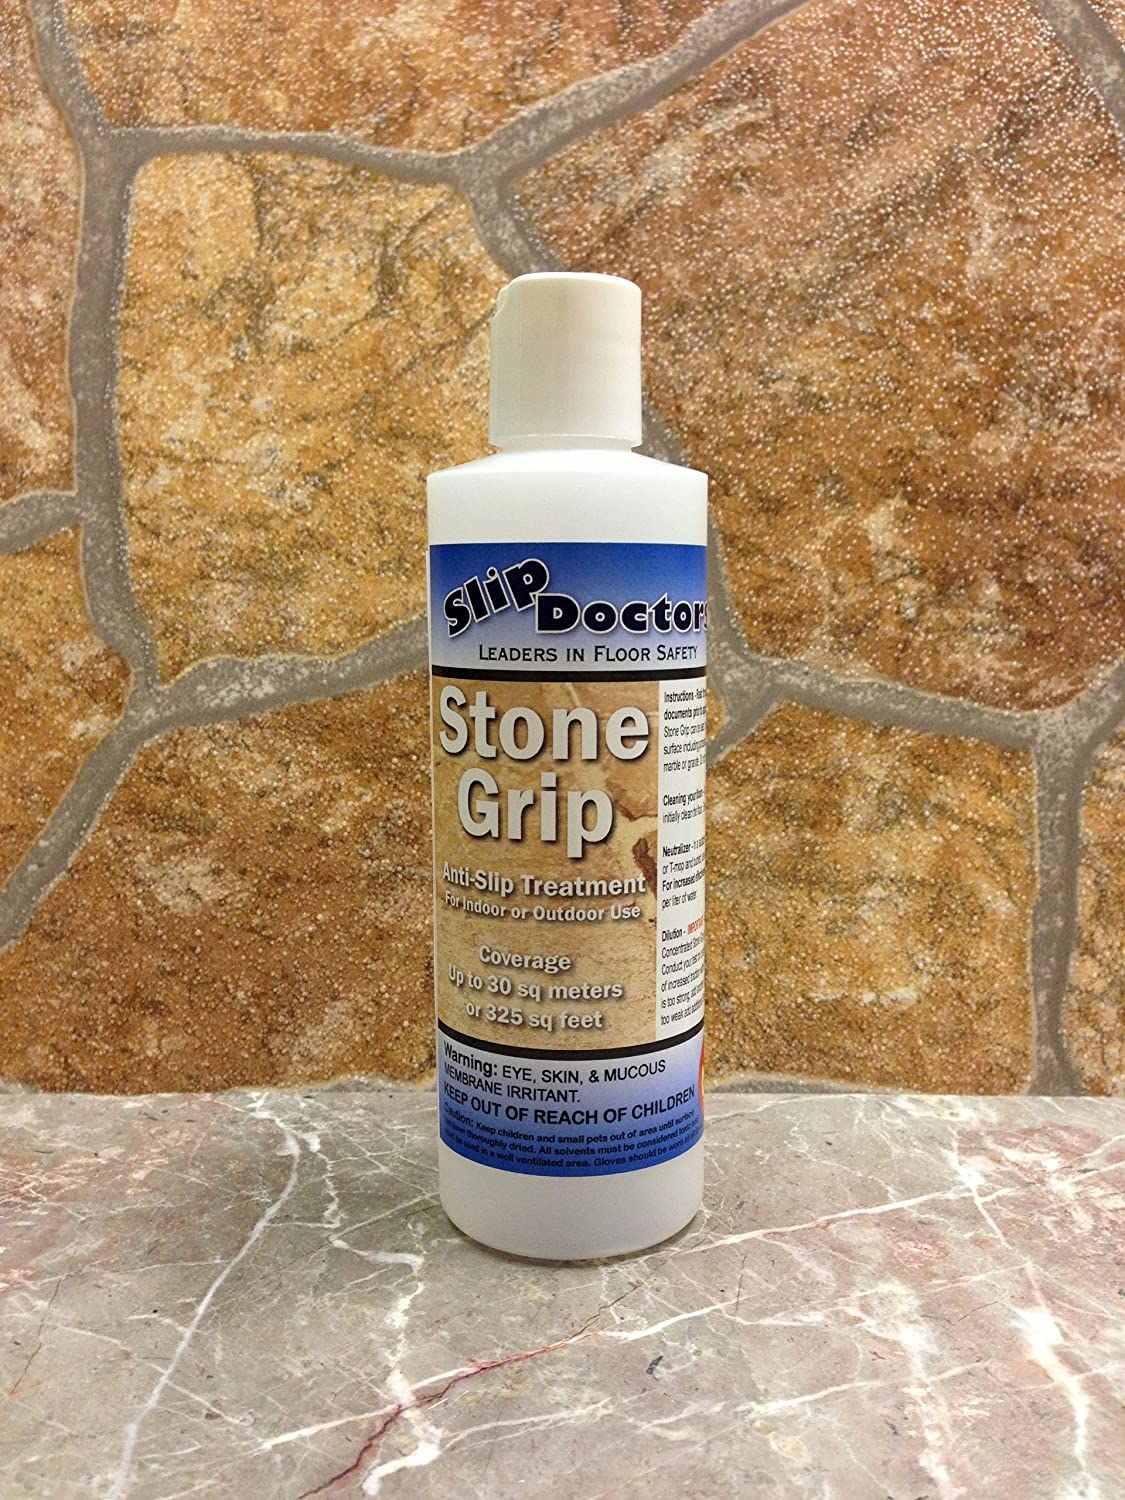 Stone grip antislip treatment for all slippery tiles amazon stone grip antislip treatment for all slippery tiles amazon kitchen home dailygadgetfo Image collections